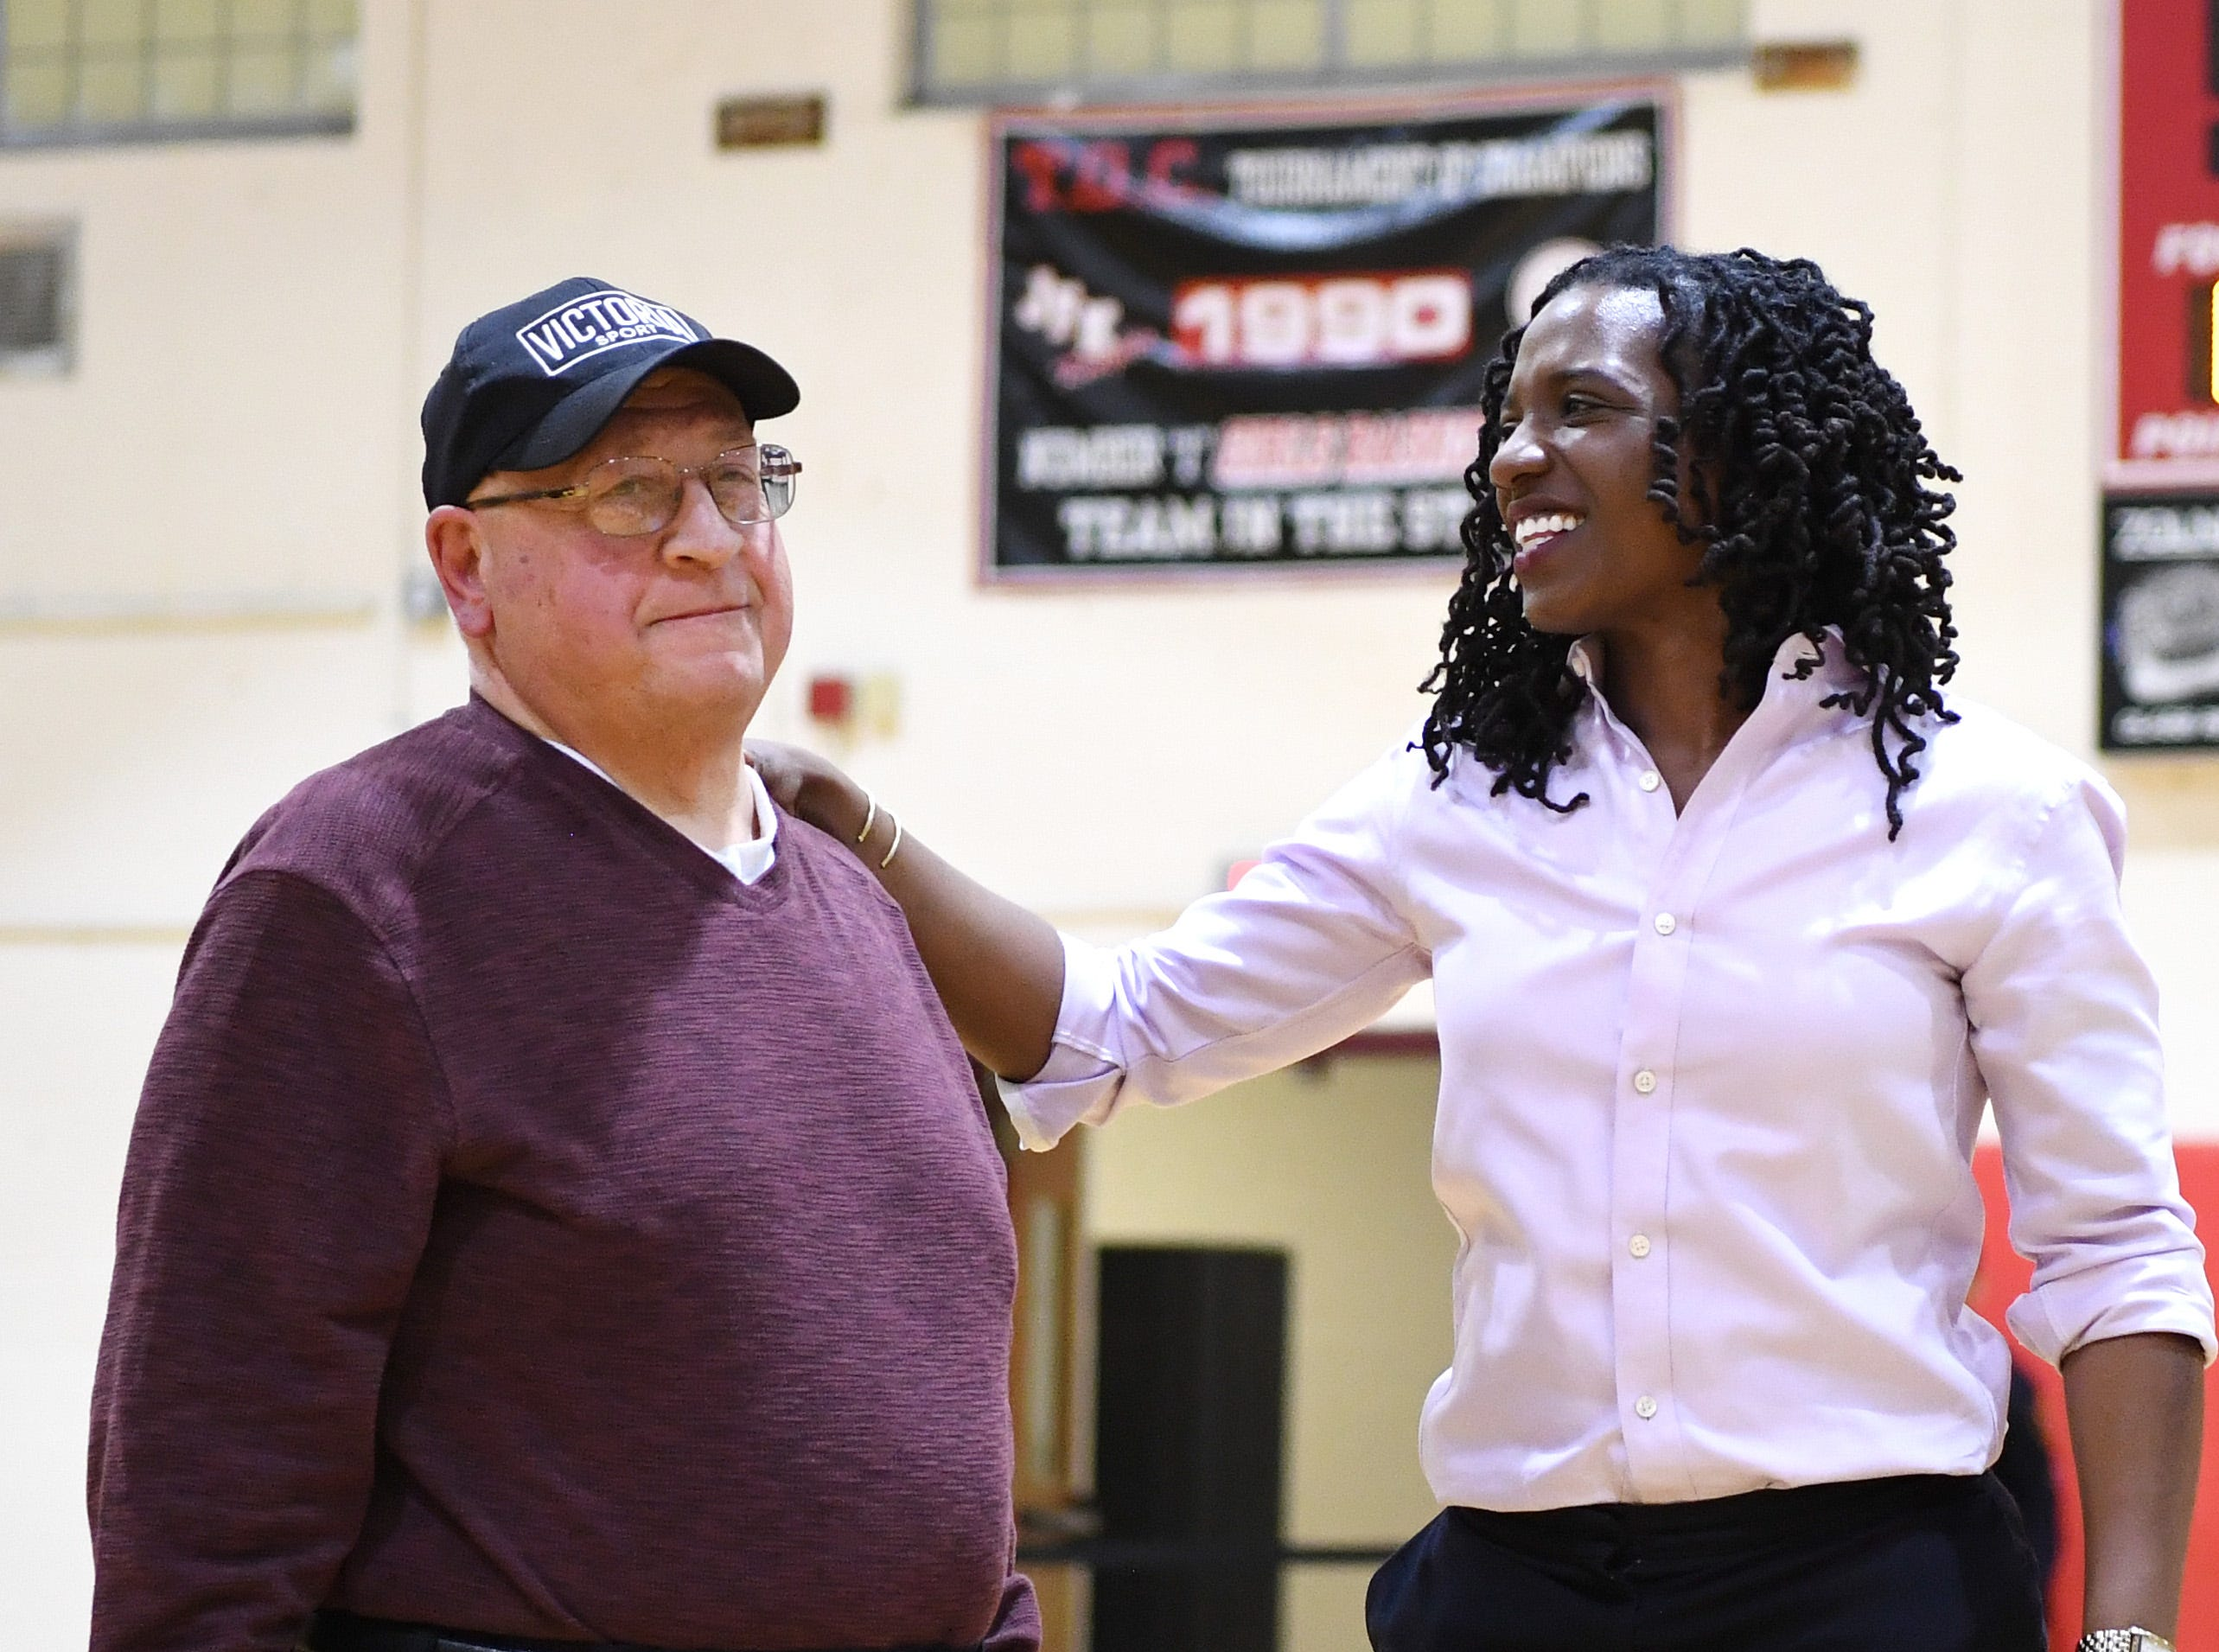 (center) Nicole Louden, who graduated from Kennedy High School in 2001 with a career total of 2,928 points, is honored in a pregame ceremony before the start of a Kennedy girls varsity basketball home game on Thursday, February 7, 2019. (left) Lou Bonora, who coached Louden her senior year.